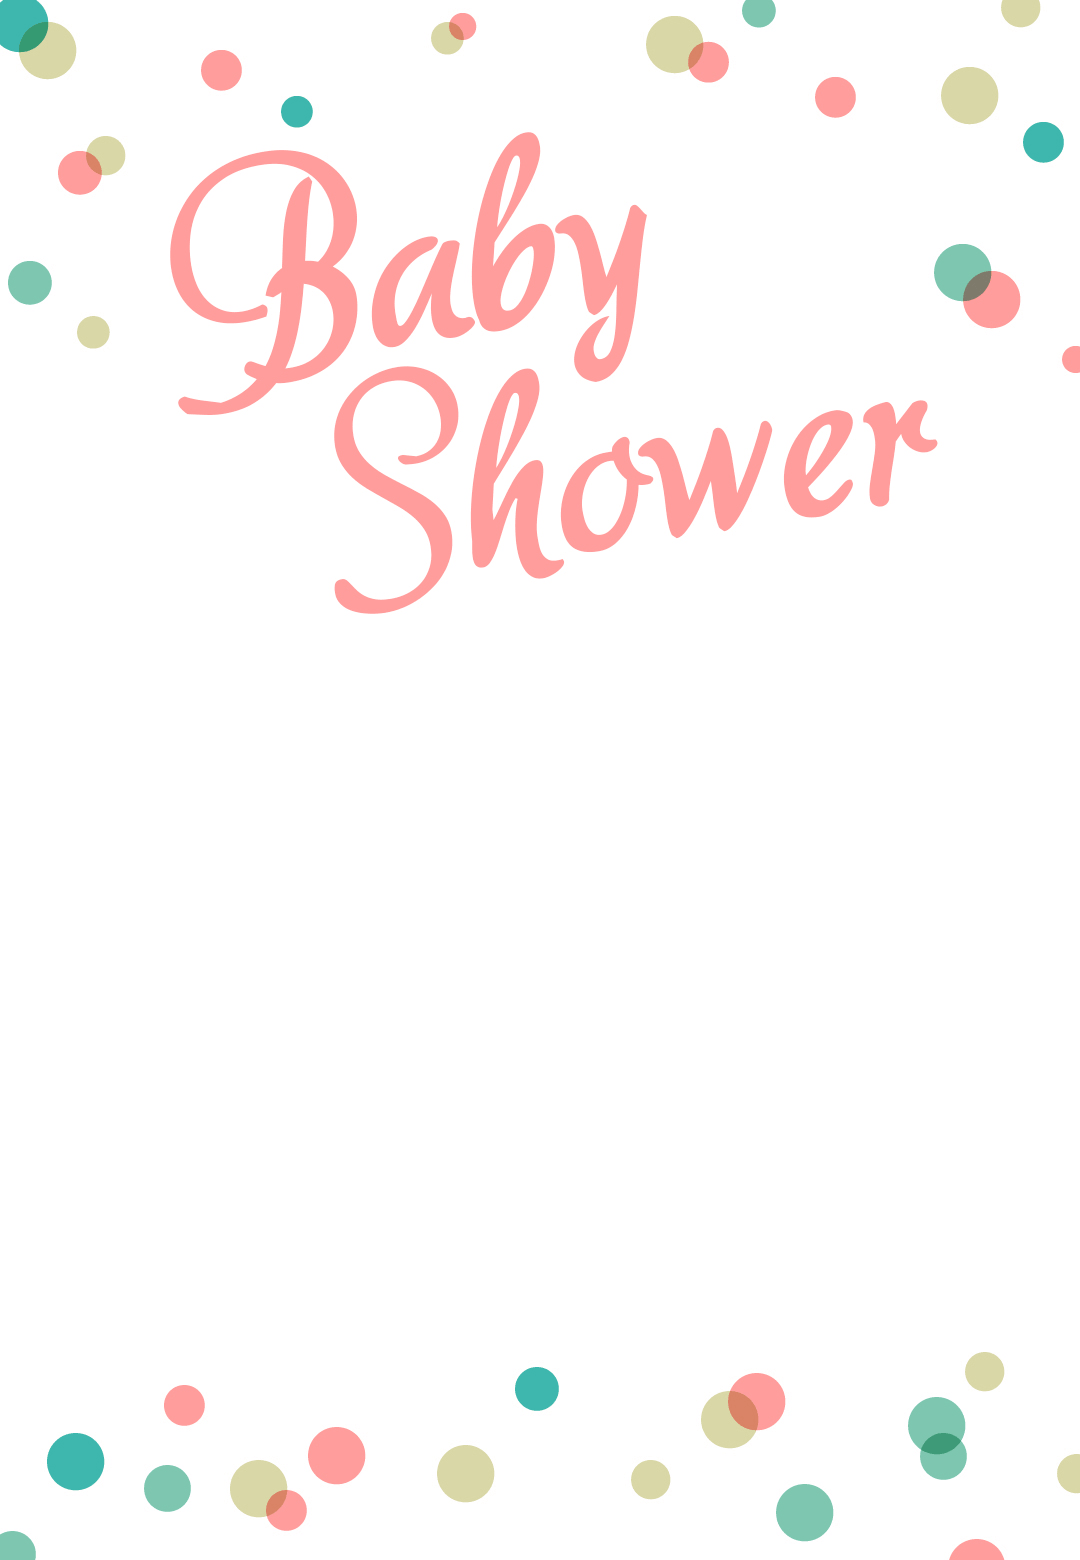 Babyshower Borders : babyshower, borders, Dancing, Borders, Printable, Shower, Invitat…, Invitations,, Invitations